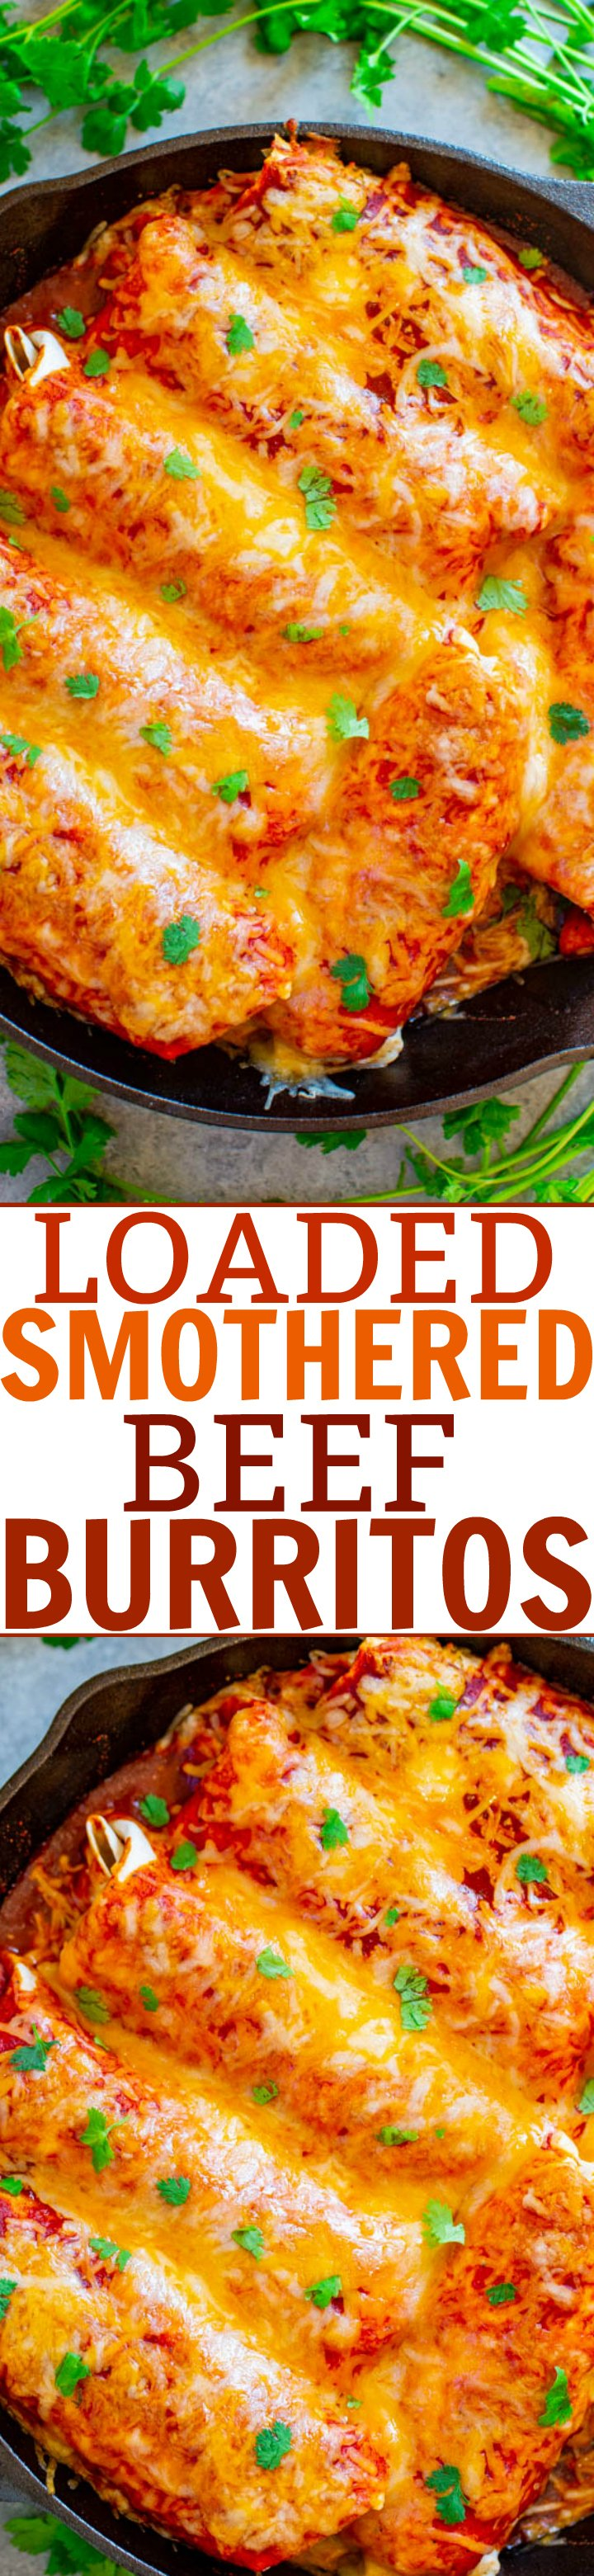 Loaded Smothered Beef Burritos - Mexican comfort food that's loaded with seasoned ground beef, refried beans, rice, and smothered with sauce and CHEESE!! Tastes BETTER than from a restaurant, freezer-friendly, and so EASY!!